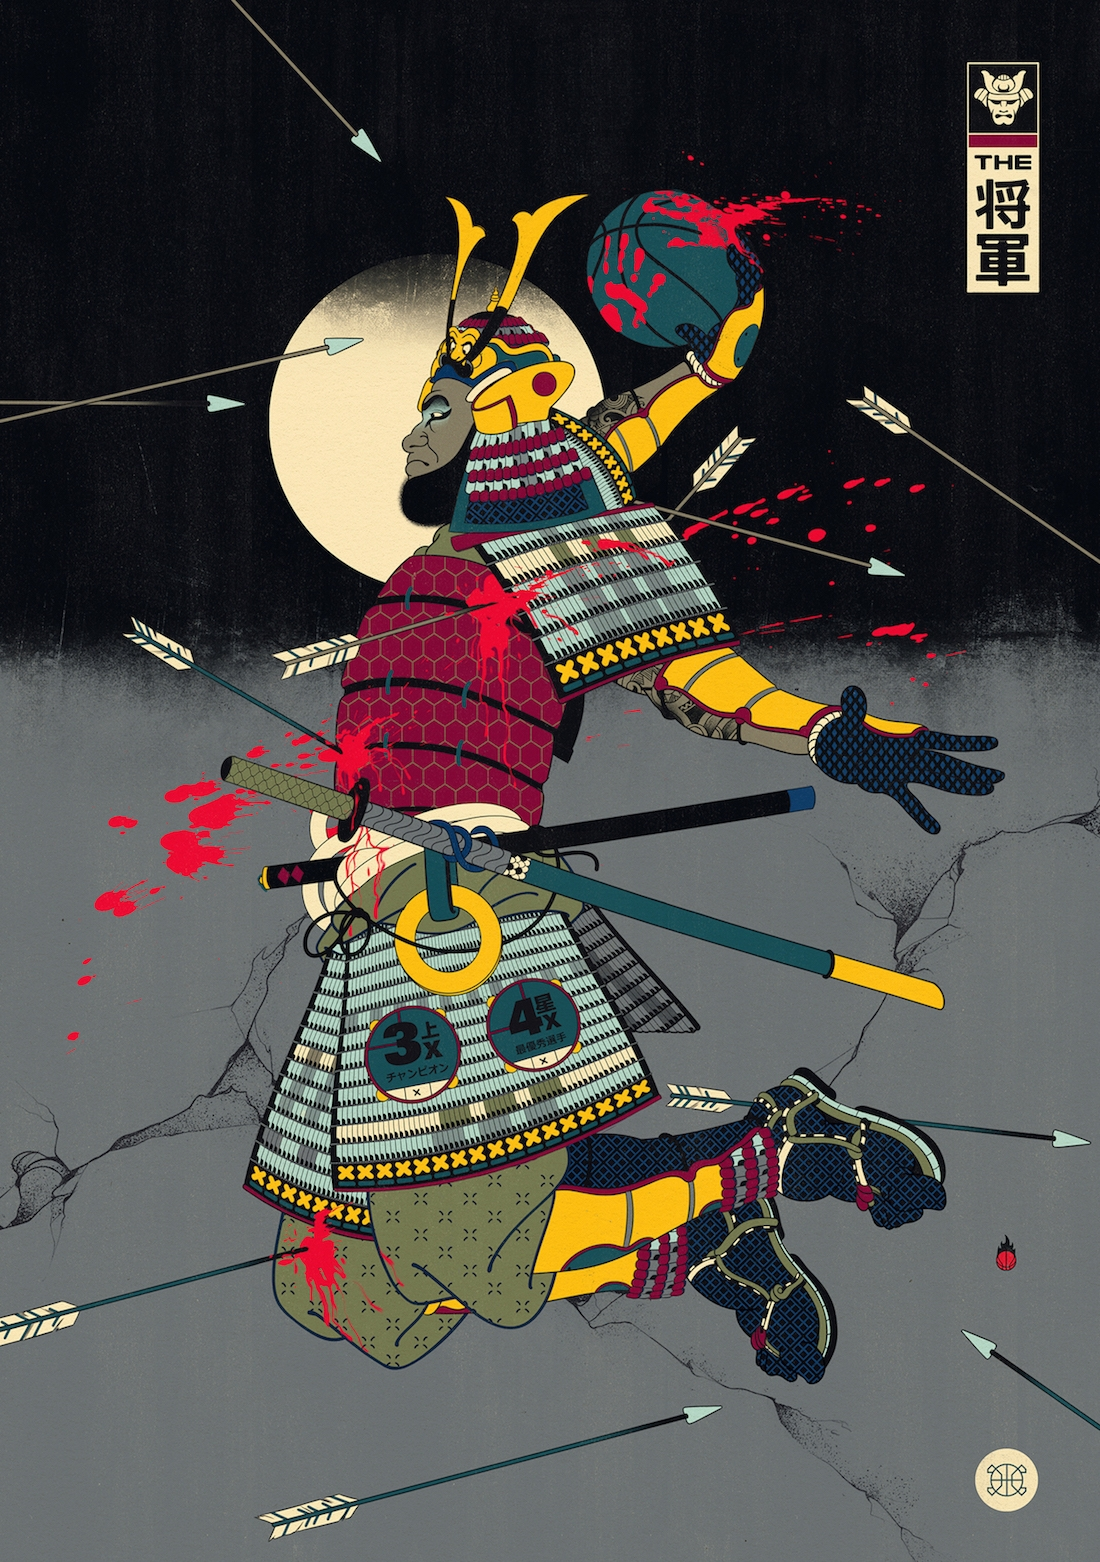 Illustrations Mixing Japanse Art & Basketball